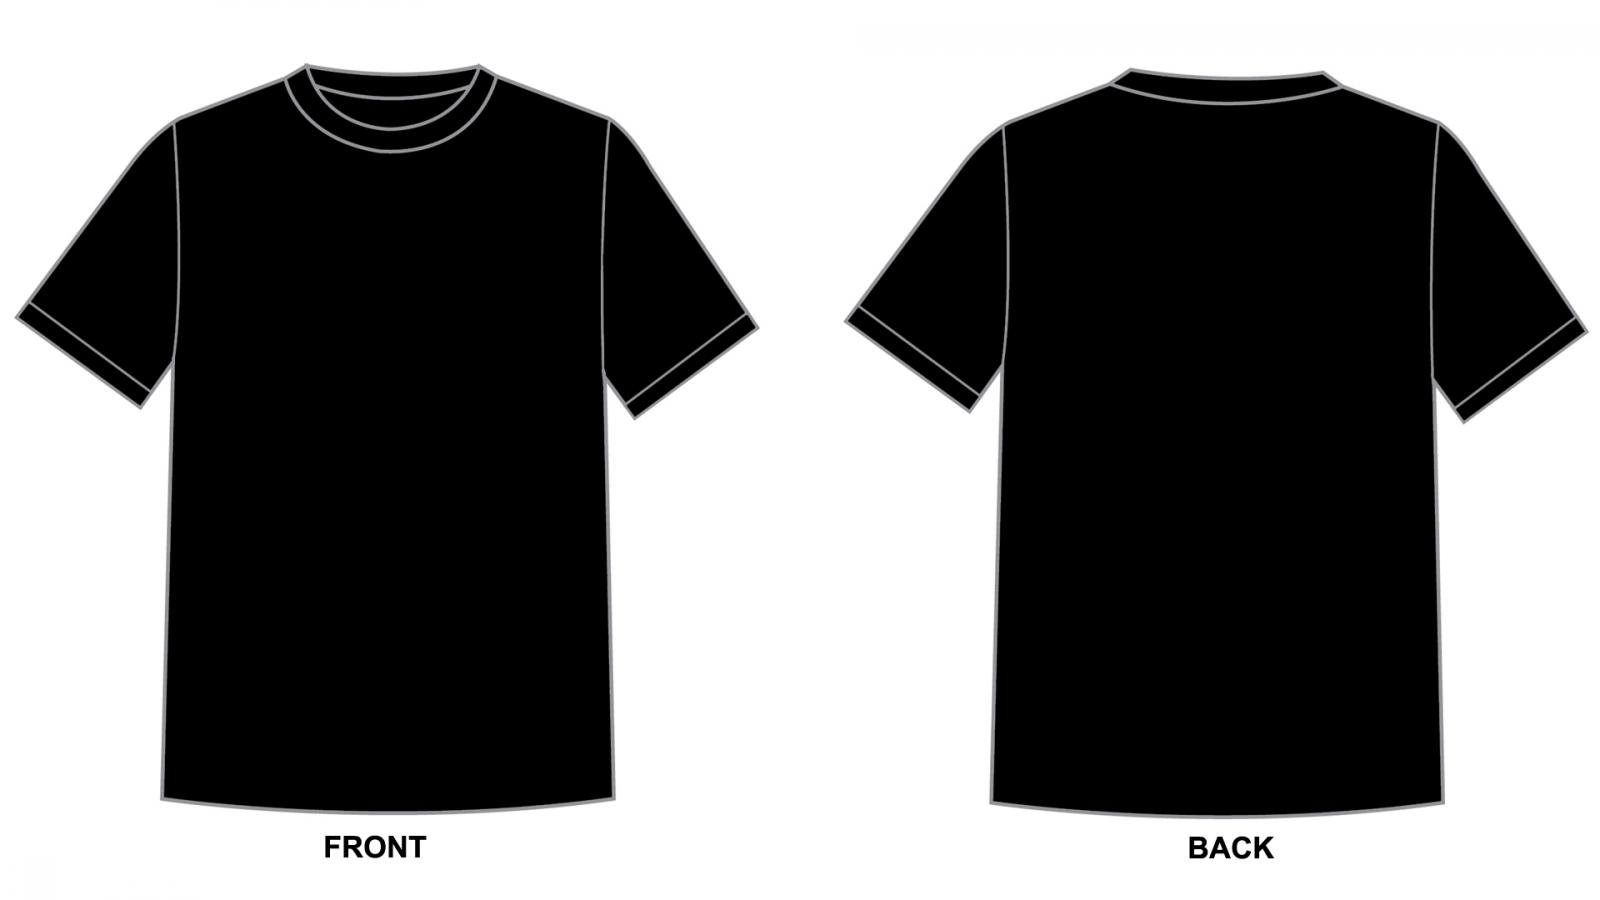 Blank tshirt template black in 1080p hd wallpapers for free for Blank t shirt design template